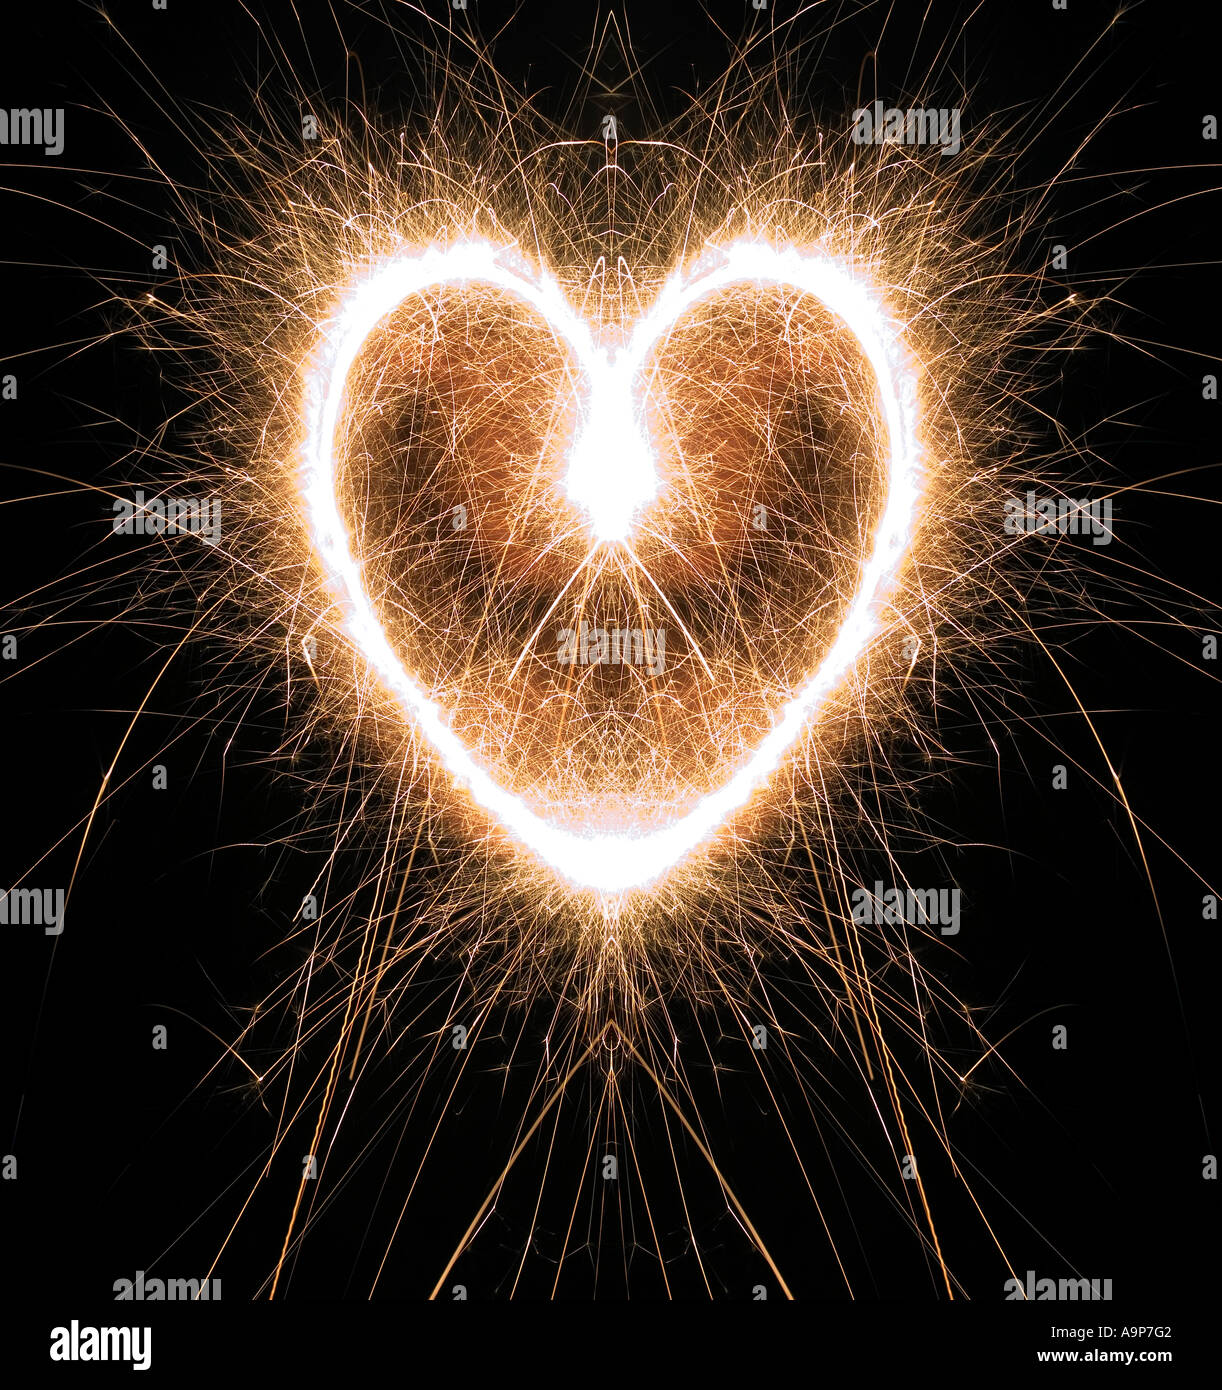 Sparkling heart shape made at night with sparklers - Stock Image